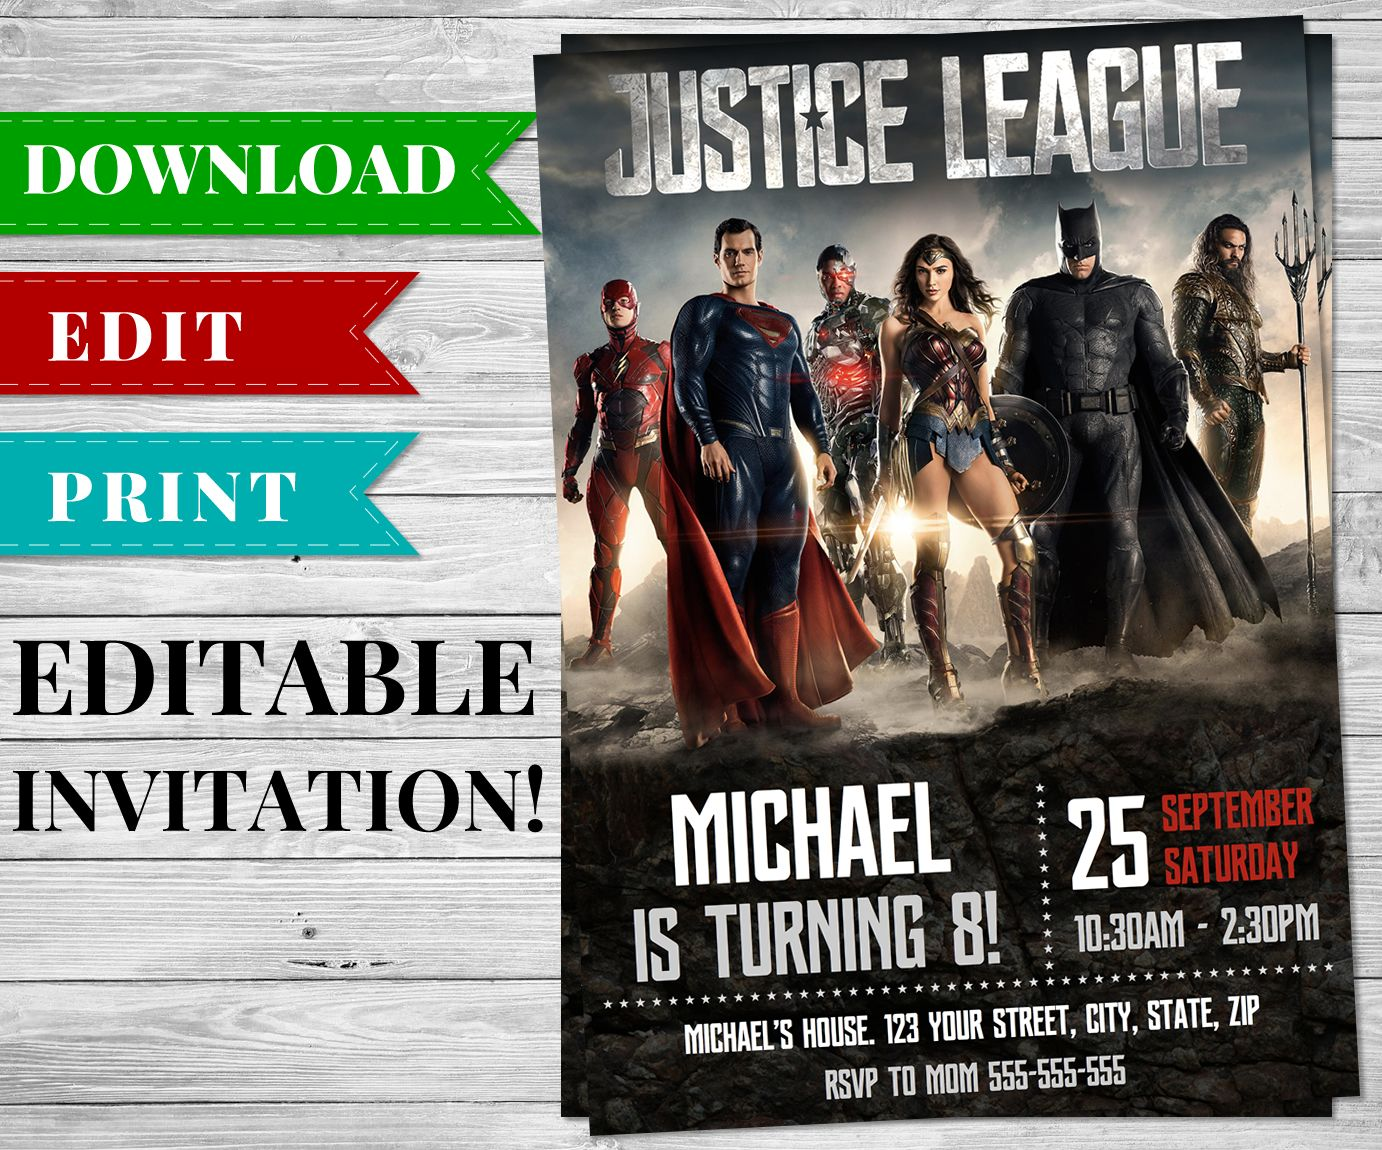 Printable Justice League Invitation Ready For You To Download And Add Your Party Details This Is An Editable PDF Be